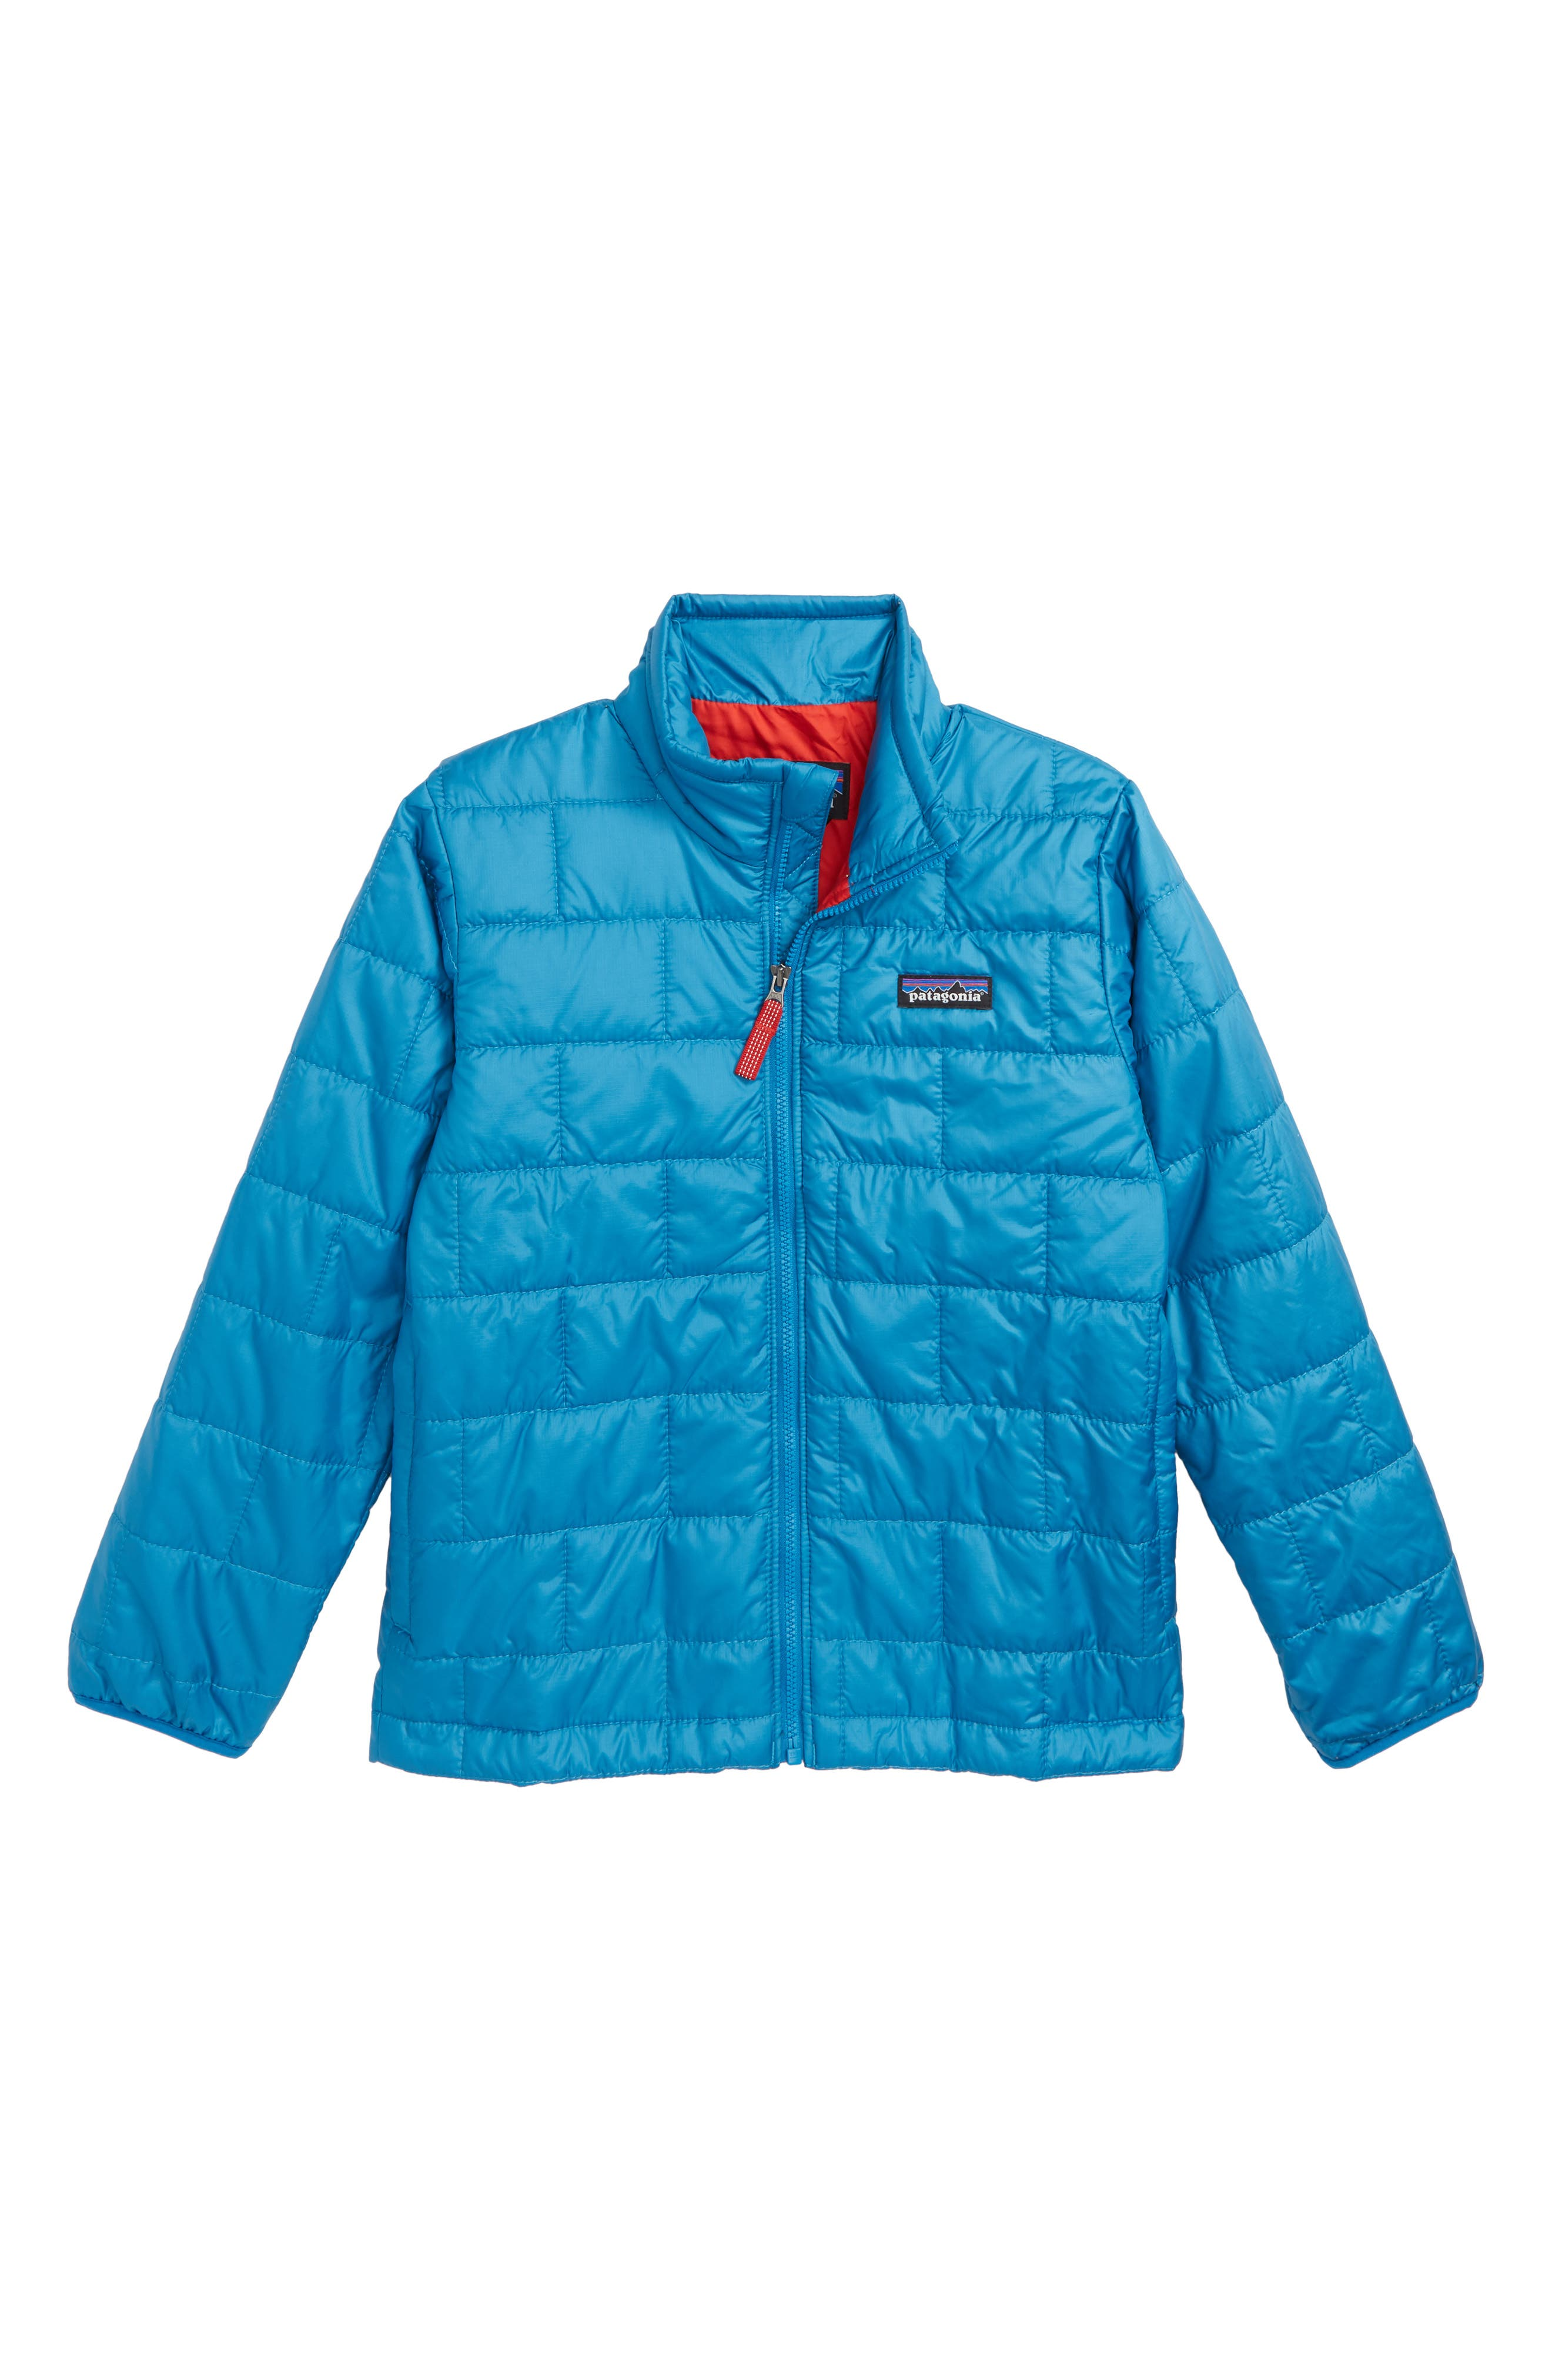 Boys Patagonia Nano Puff Water Repellent Primaloft Insulated Jacket Size XL (14)  Blue